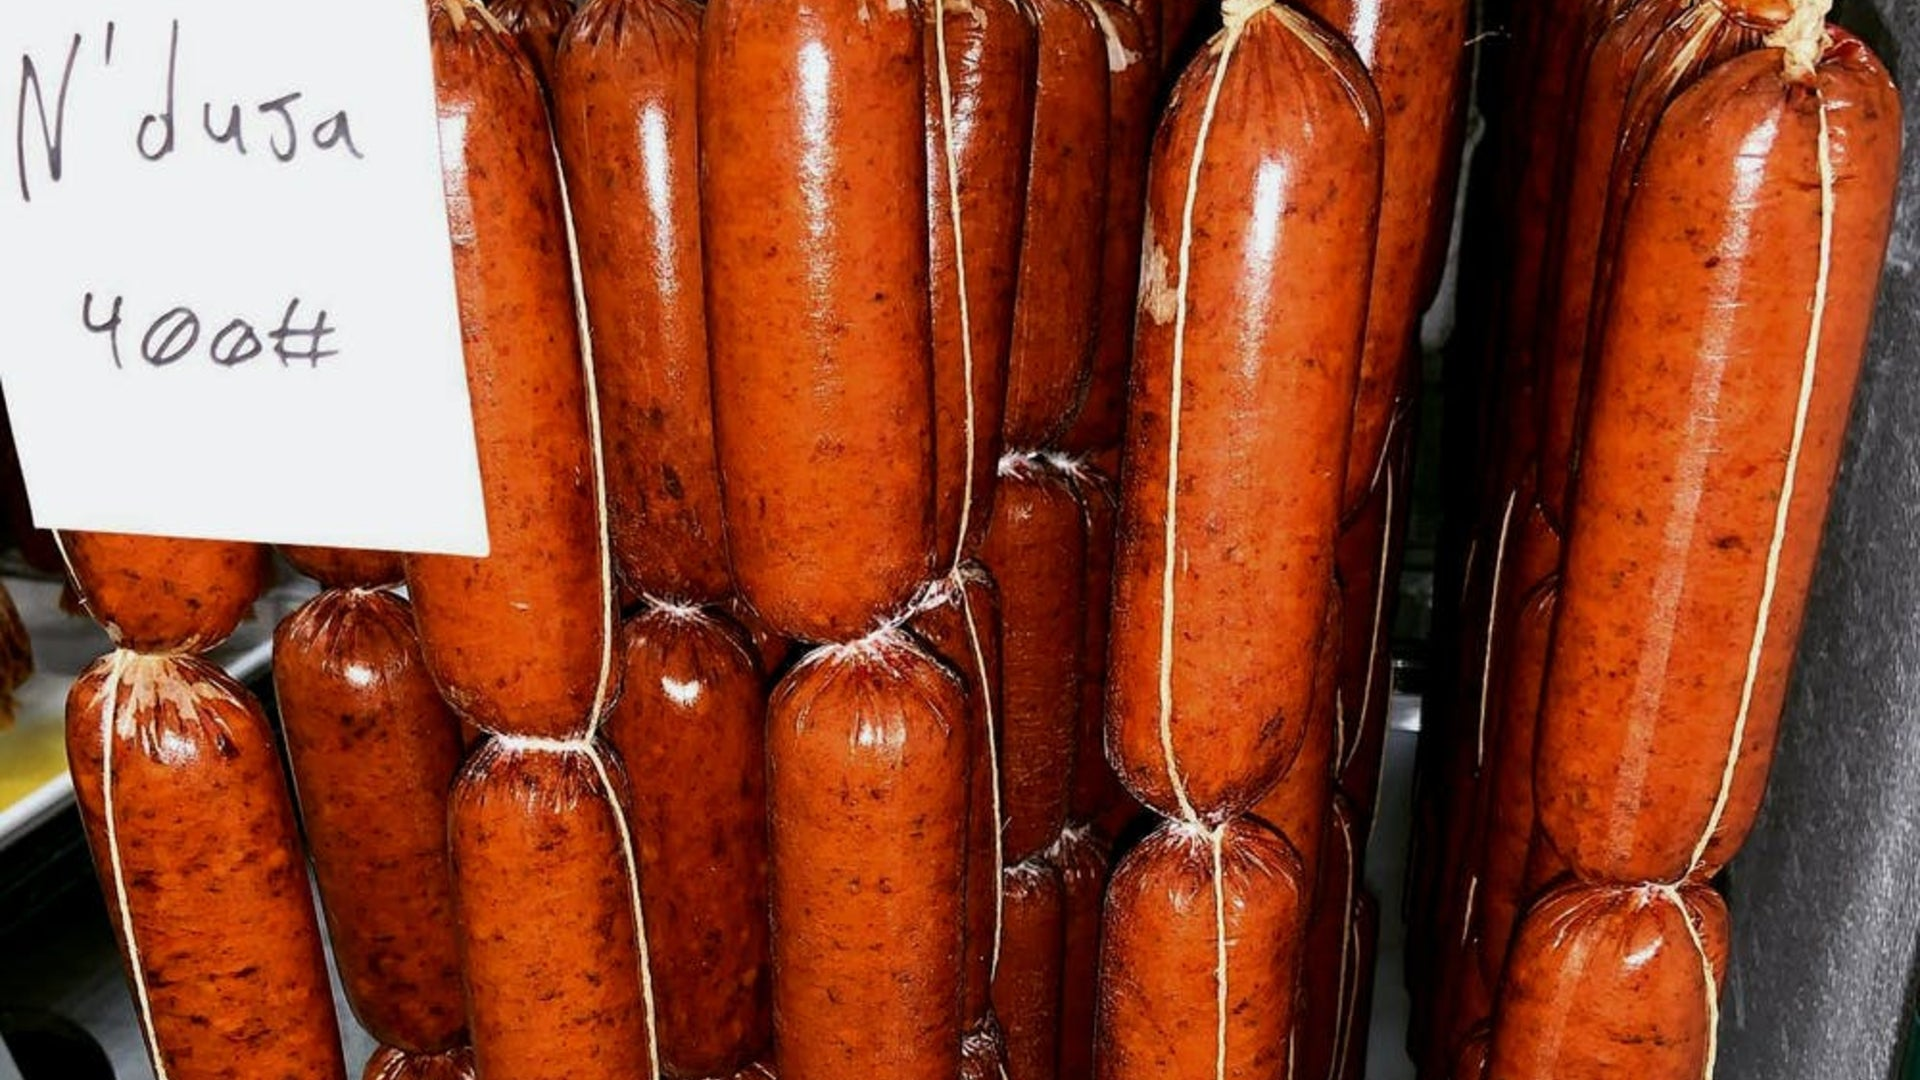 A close up of 'Nduja chubs hanging in the fermentation room.